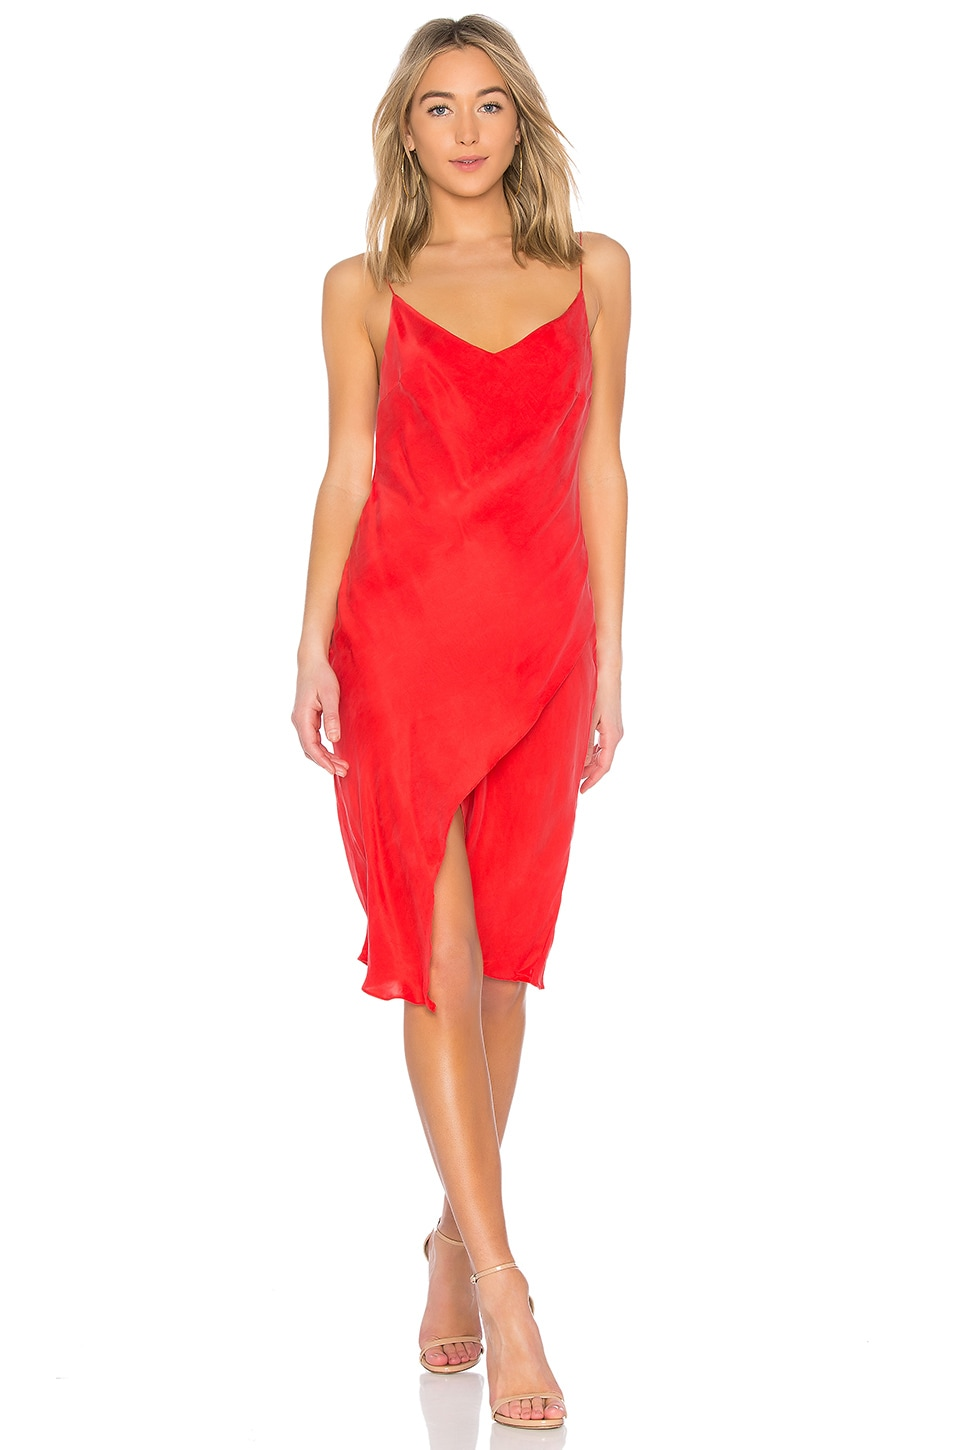 Winona Australia Breeze Dress In Red Revolve Shop women's clothing today & receive express worldwide shipping with easy 30 day returns. usd